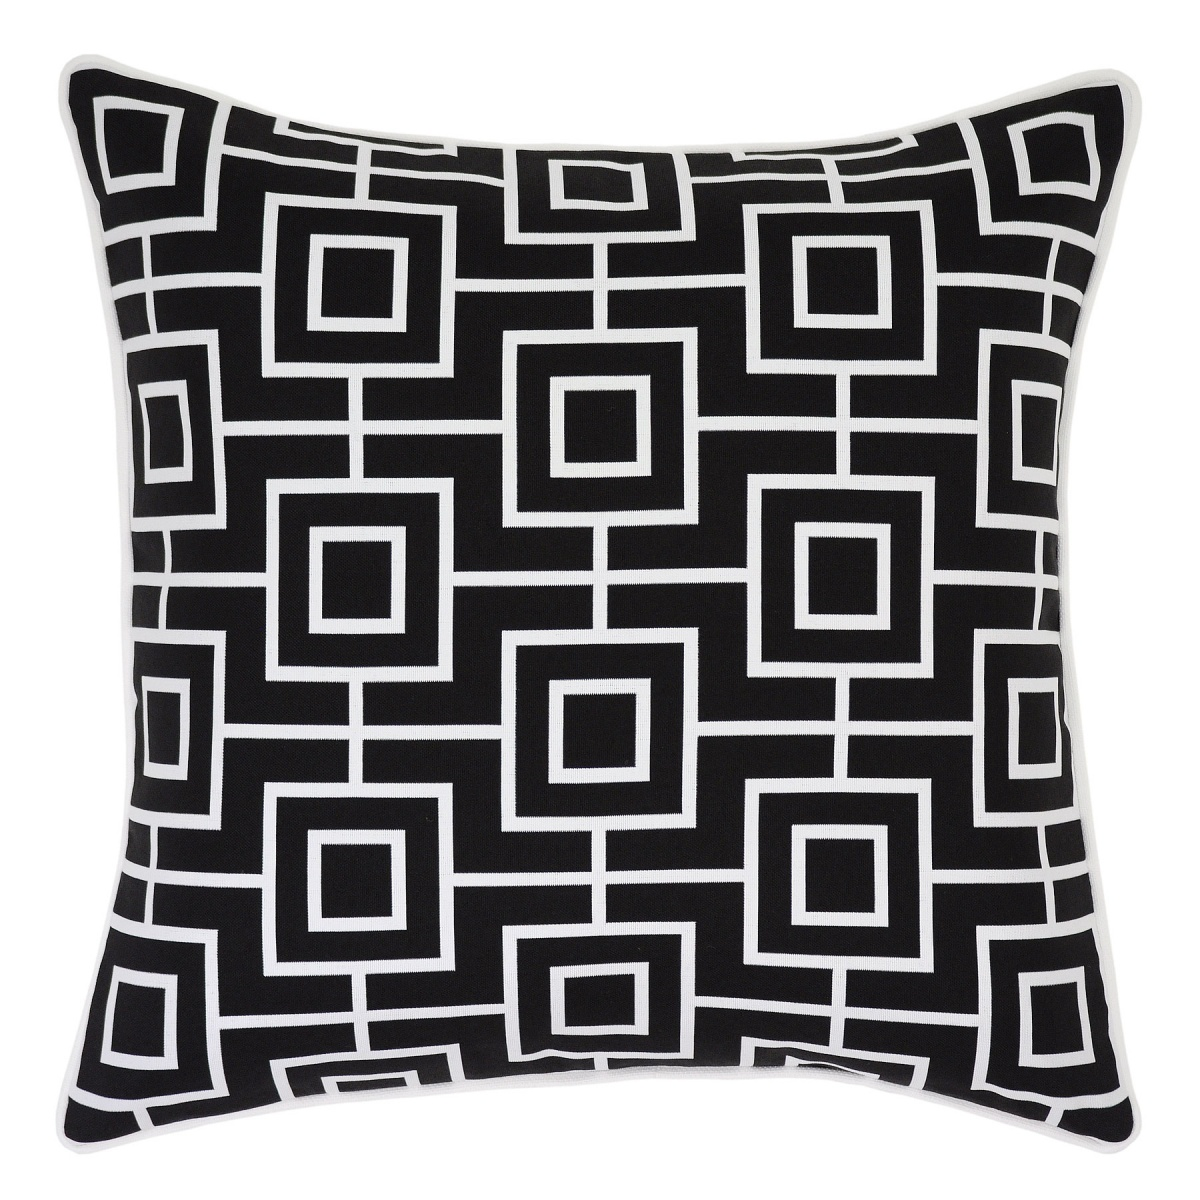 Bondi Ash Outdoor Cushion with White Piping - 45x45cm